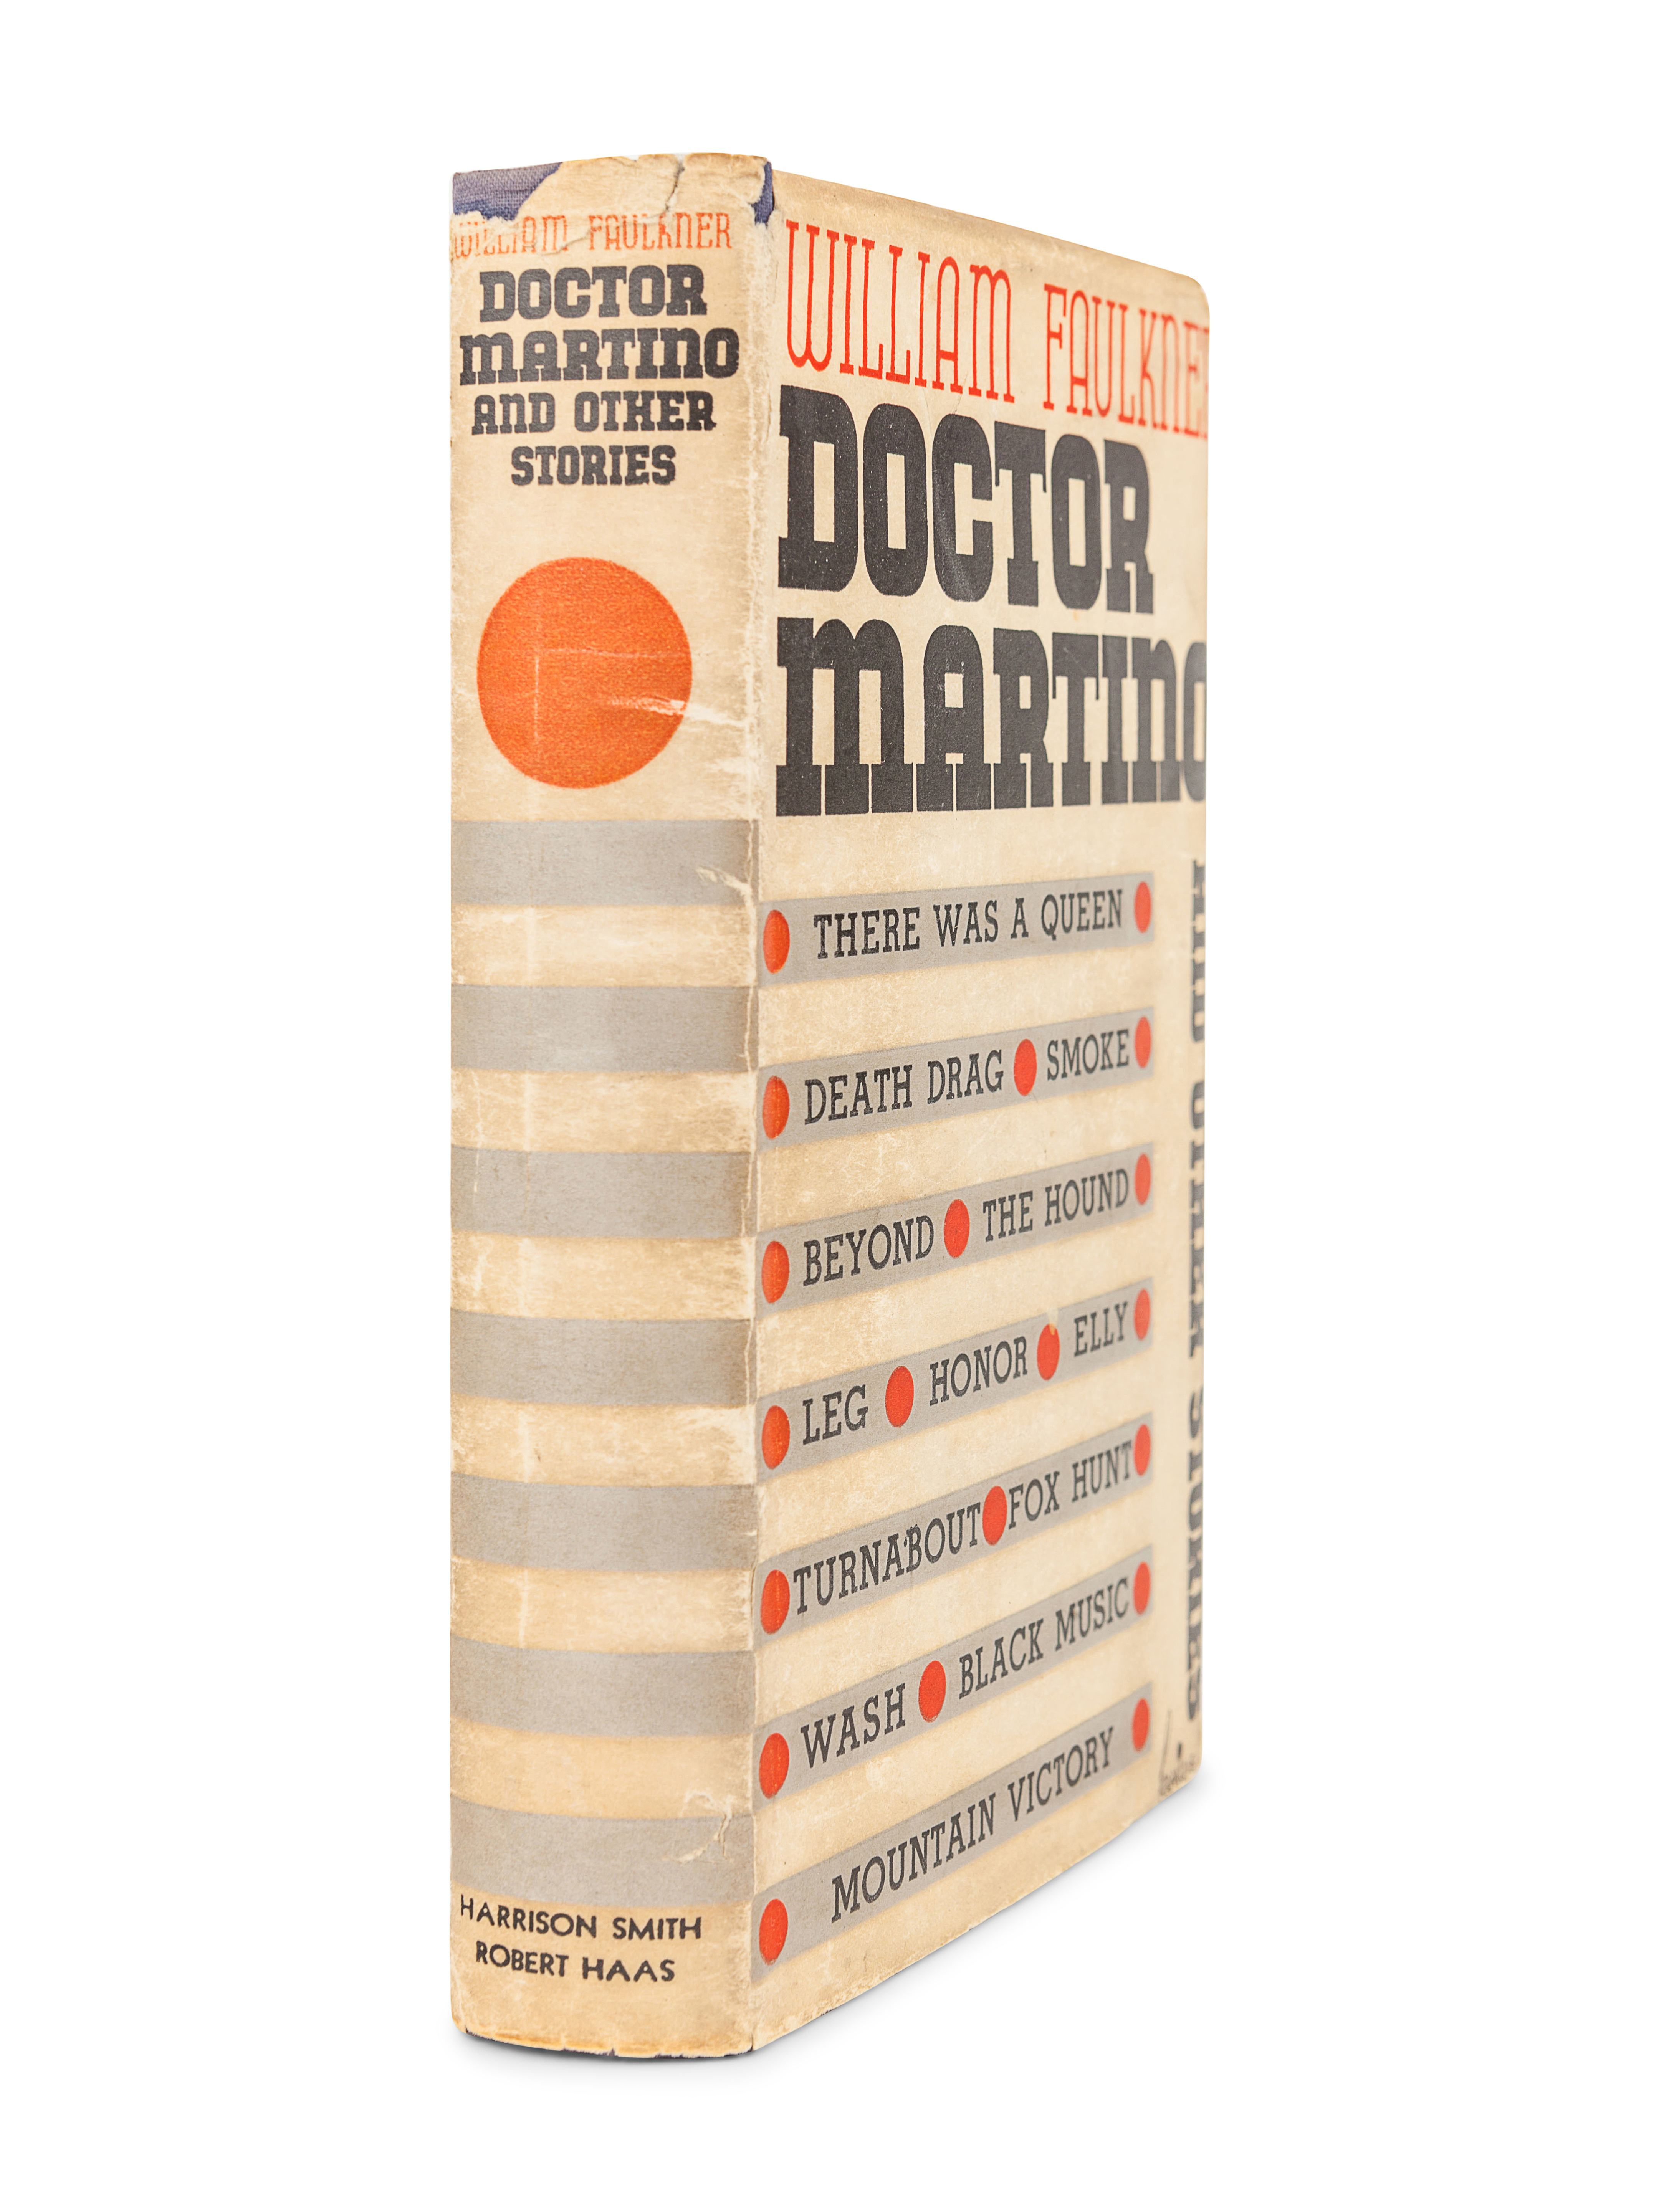 FAULKNER, William. Doctor Martino and other stories. New York: Harrison Smith & Robert Haas, 1934. - Image 3 of 3